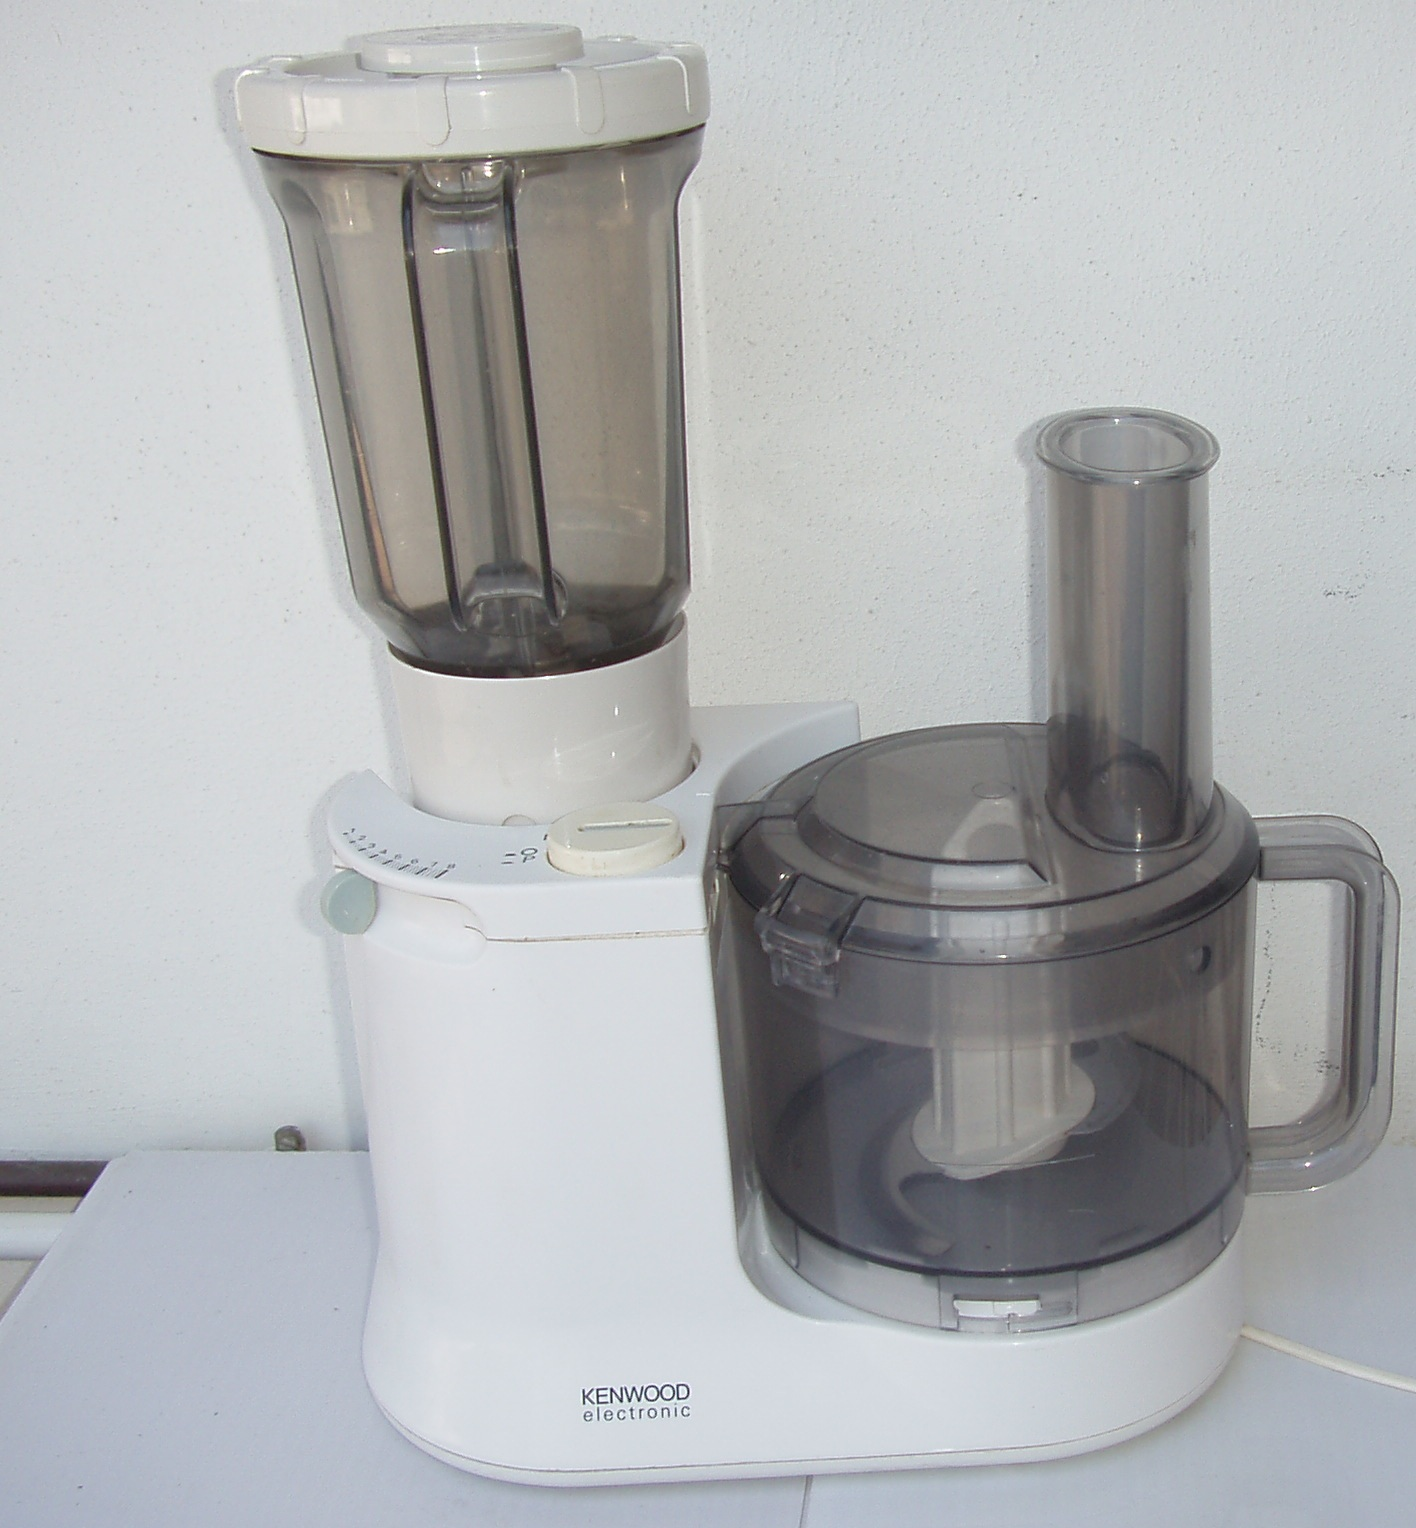 Kenwood Electronic Food Processor / Liquidizer - with accessories - in excellent working order